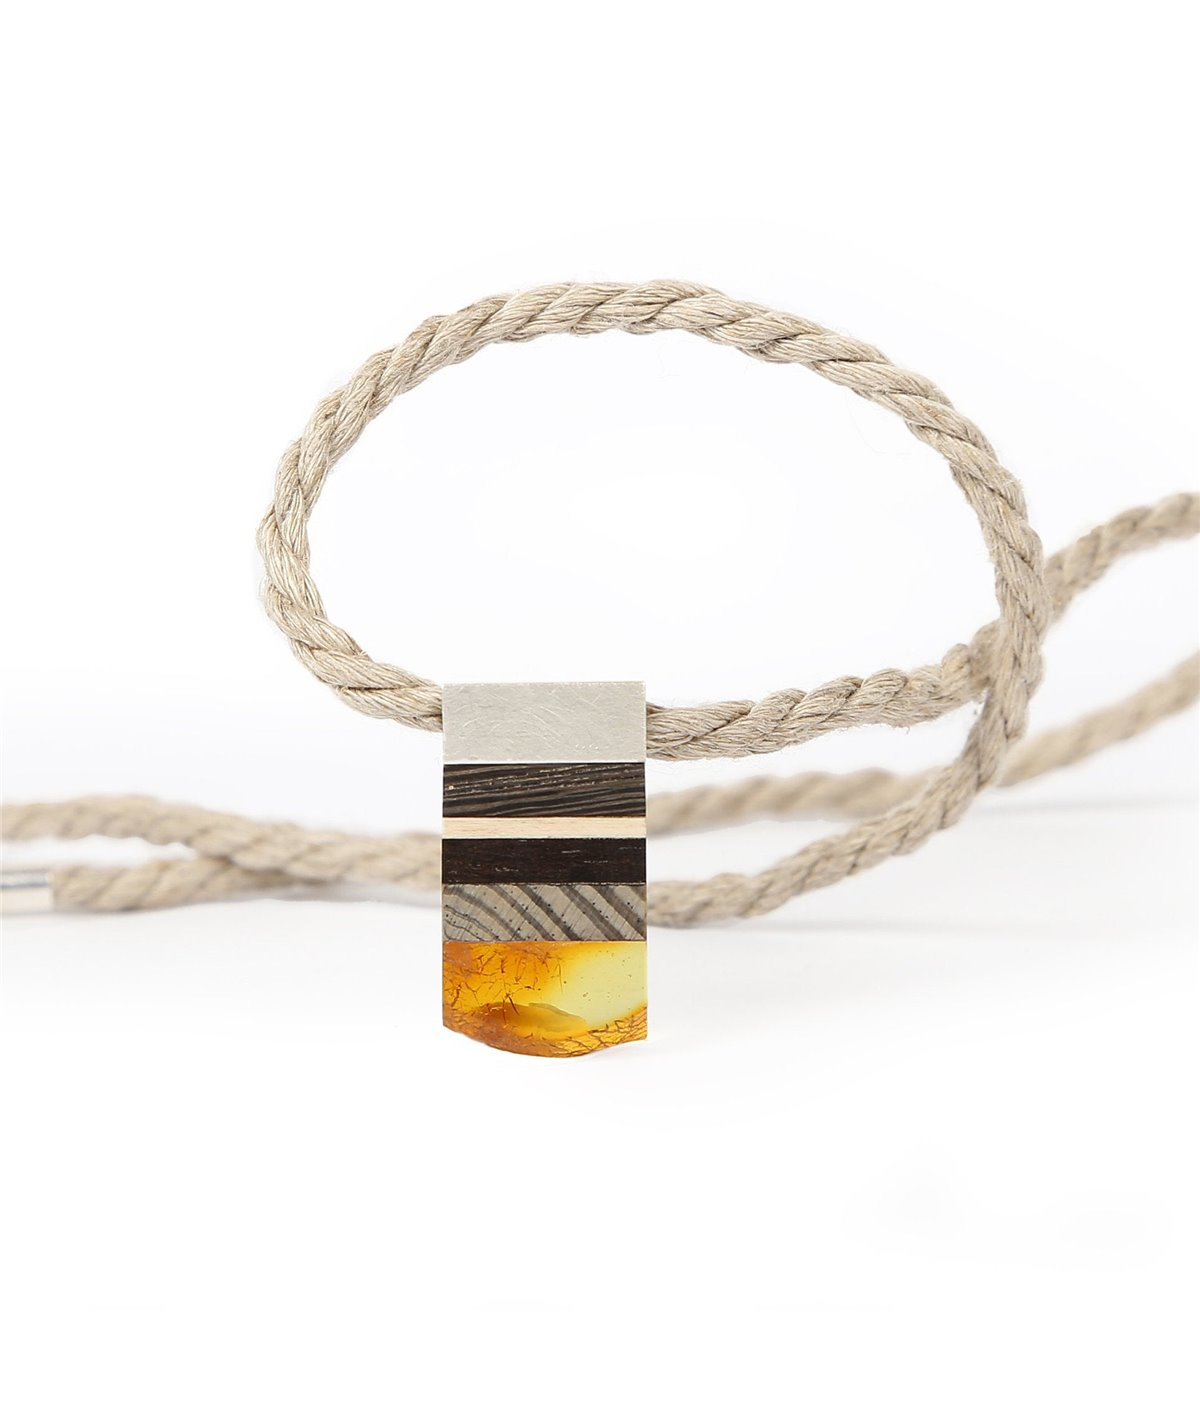 SIMPLE XS necklace baltic Amber + 1000 yr old bog oak + Sterling silver, black orange, Amberwood Marta Wlodarska